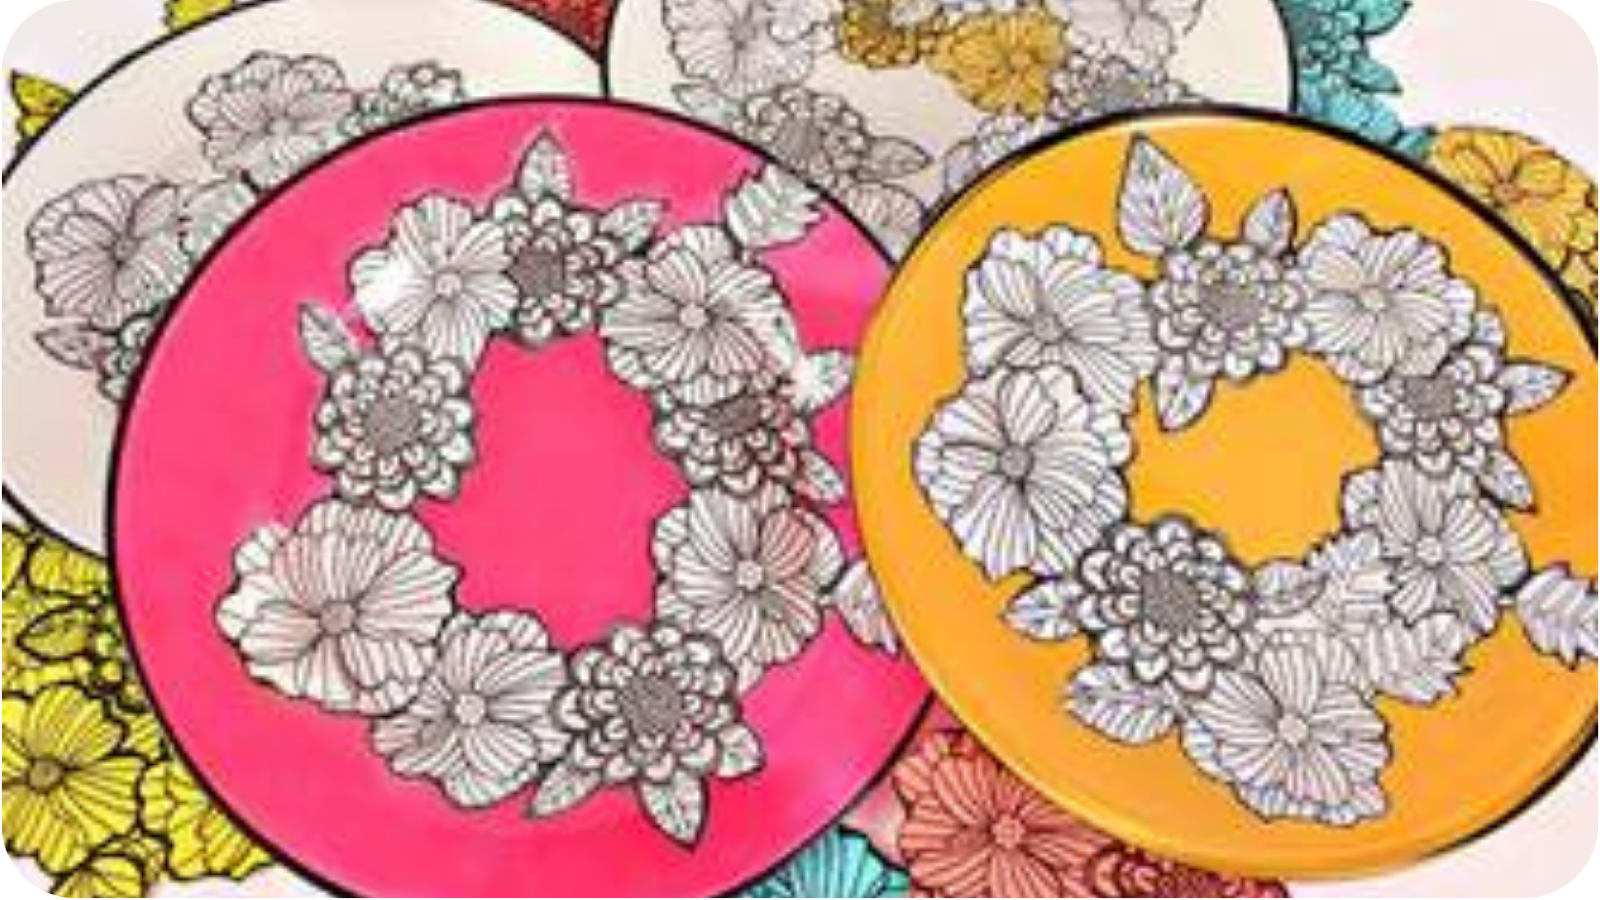 DIY Coloring Book Dishes